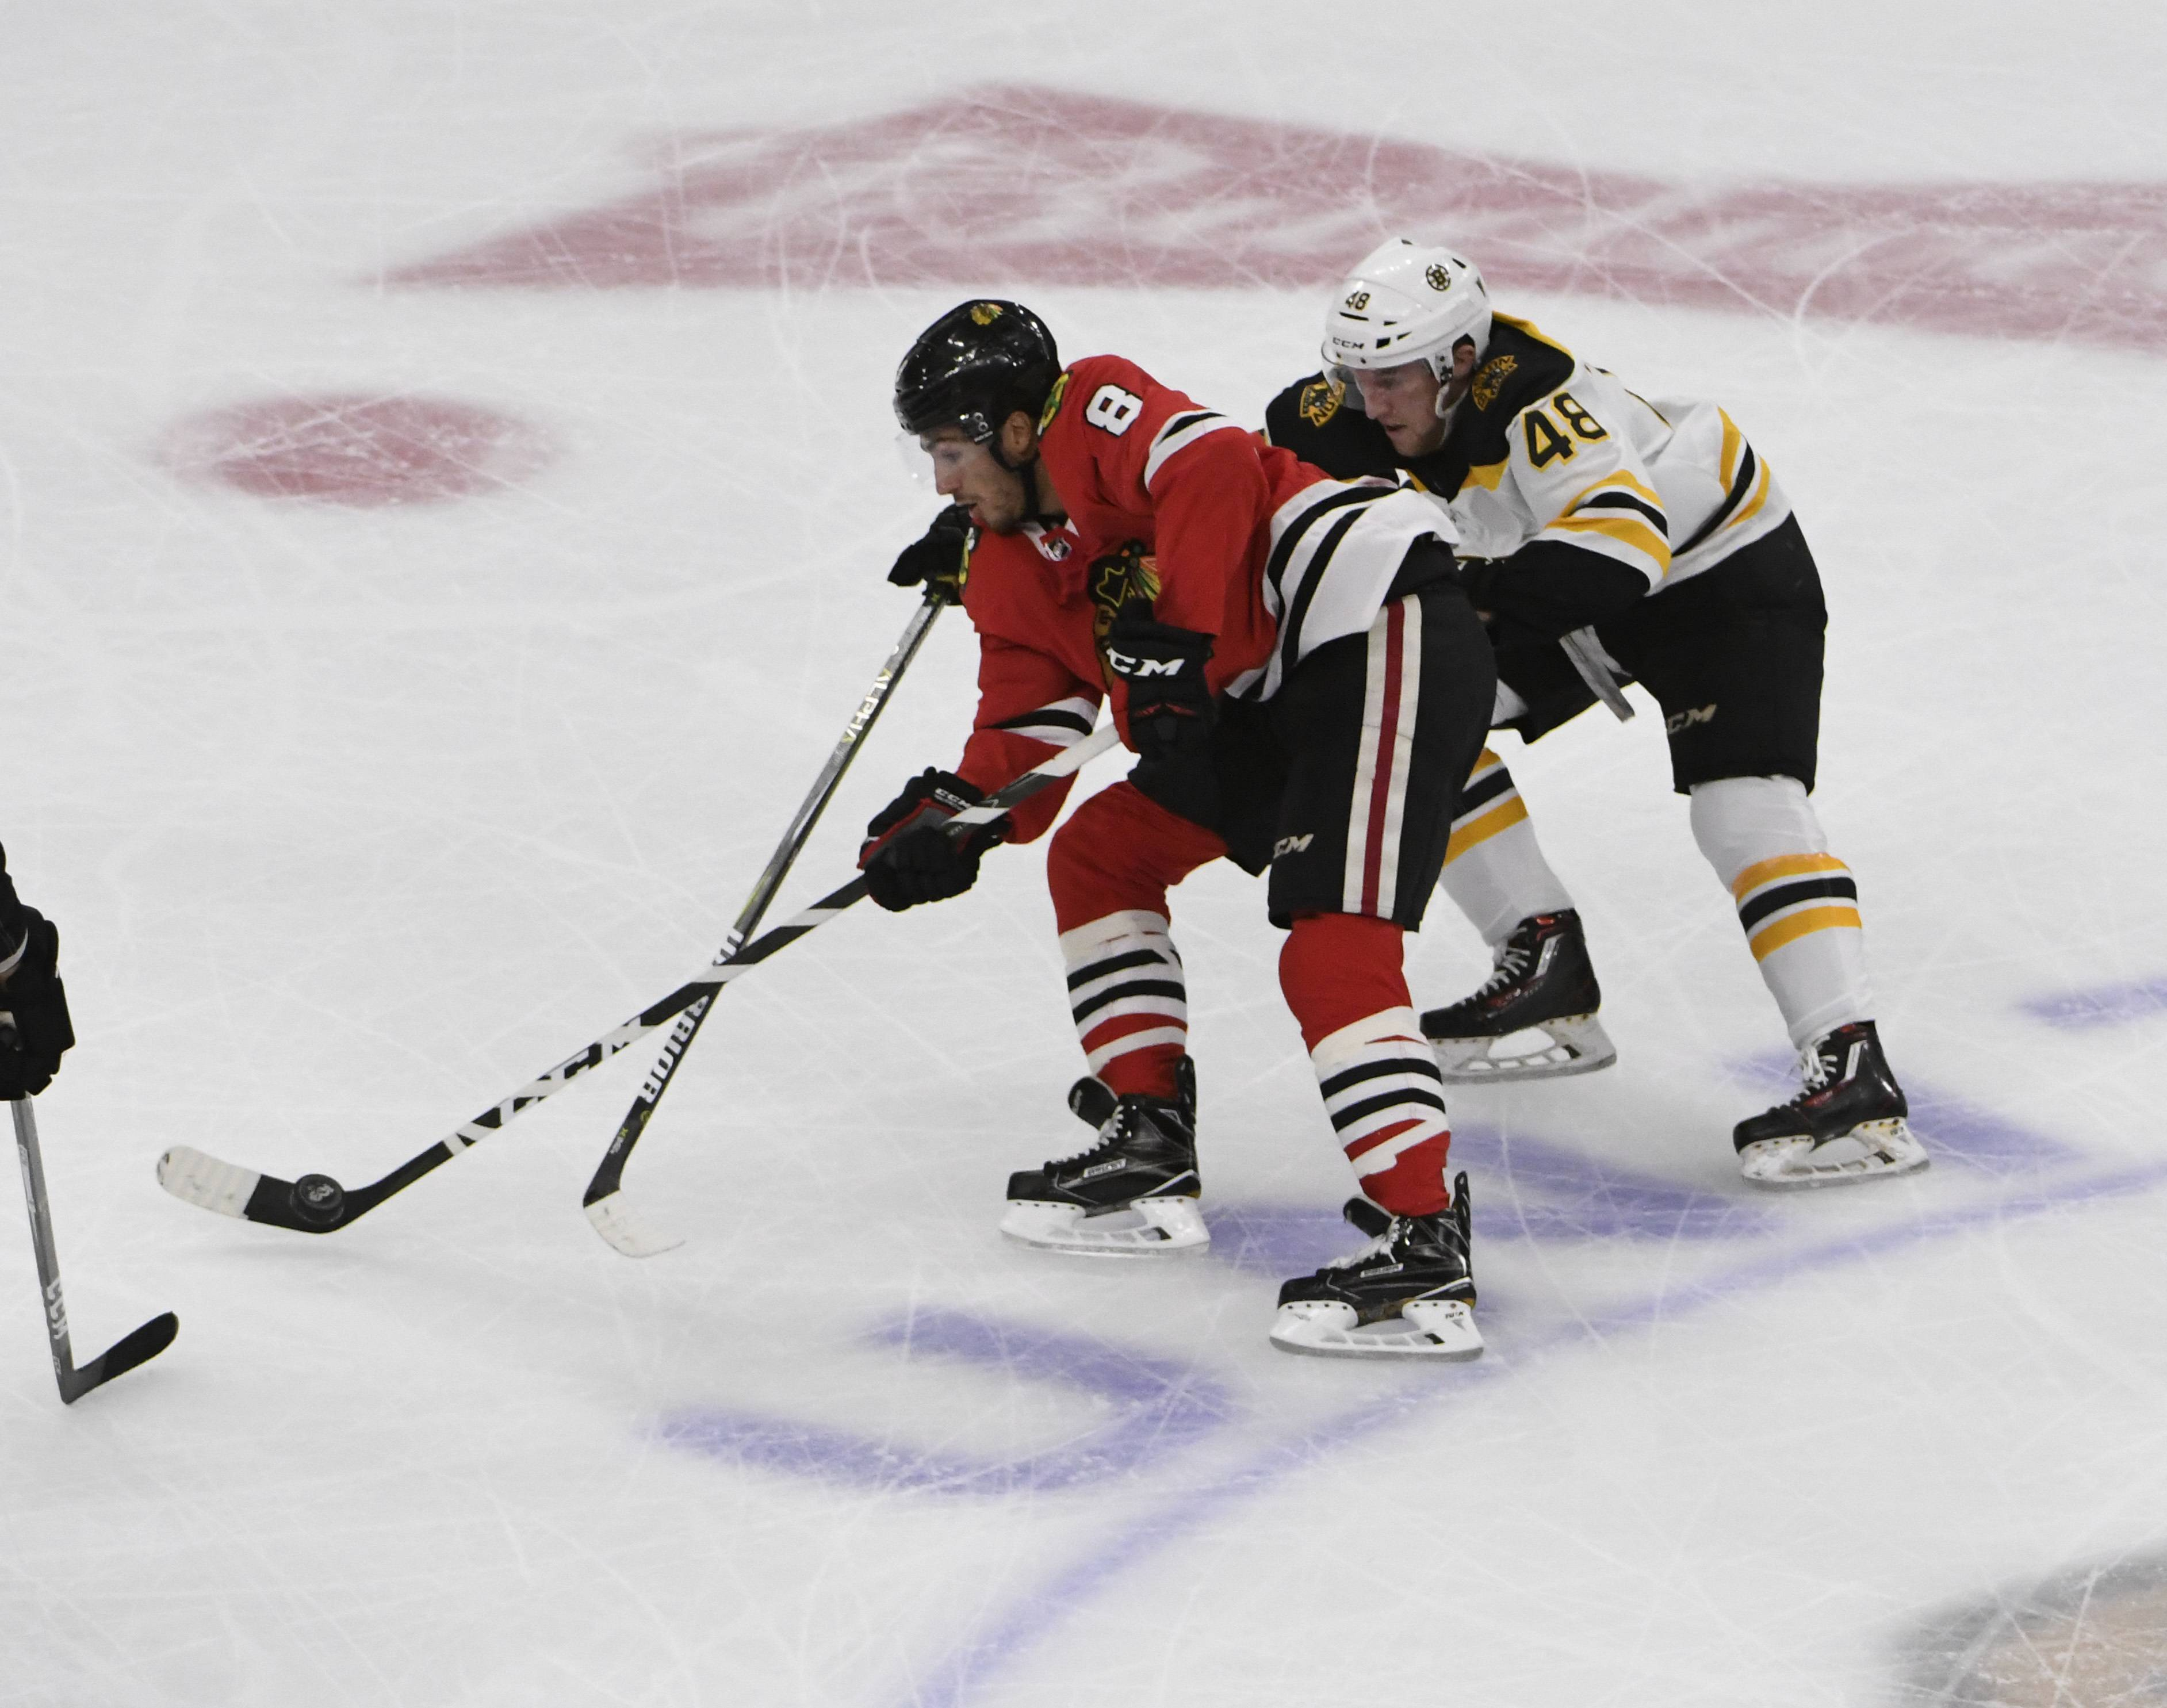 Boston Bruins defenseman Matt Grzelcyk (48) and Chicago Blackhawks center Nick Schmaltz (8) go for the puck in the first period of a preseason NHL hockey game Saturday, Sept. 30, 2017, in Chicago.